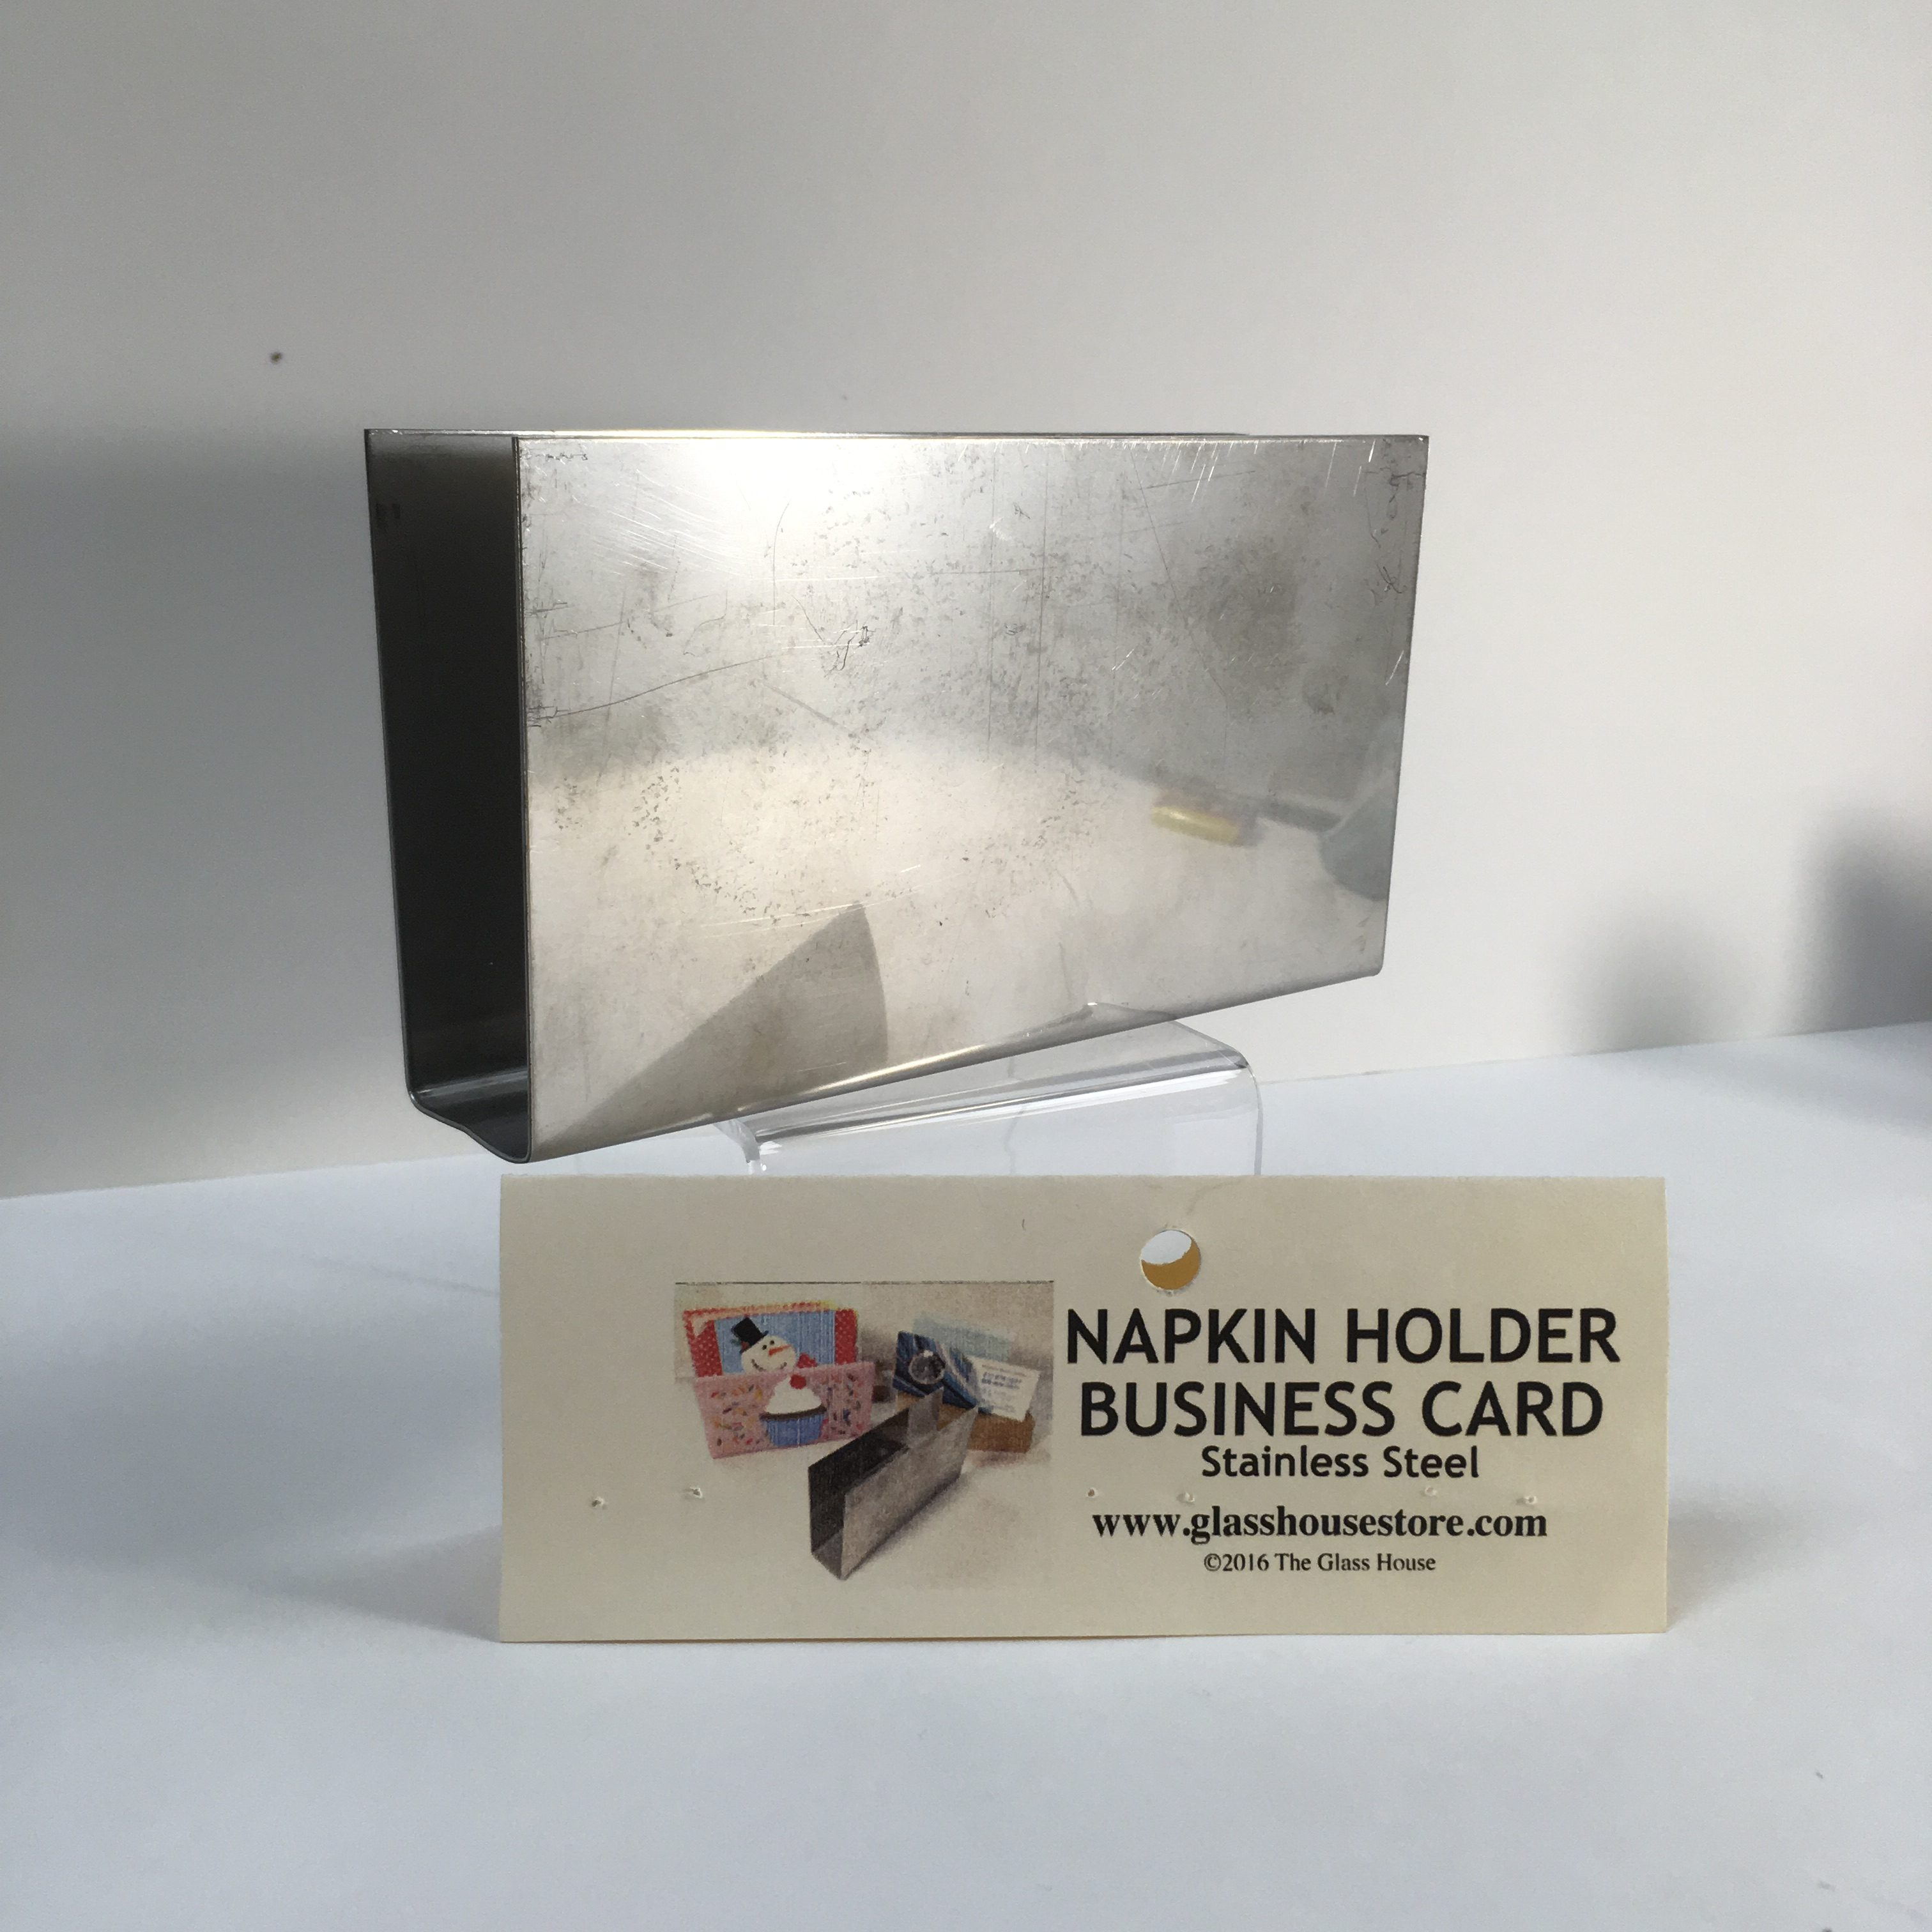 Stainless steel napkin holder business card holder mold glass business reheart Gallery